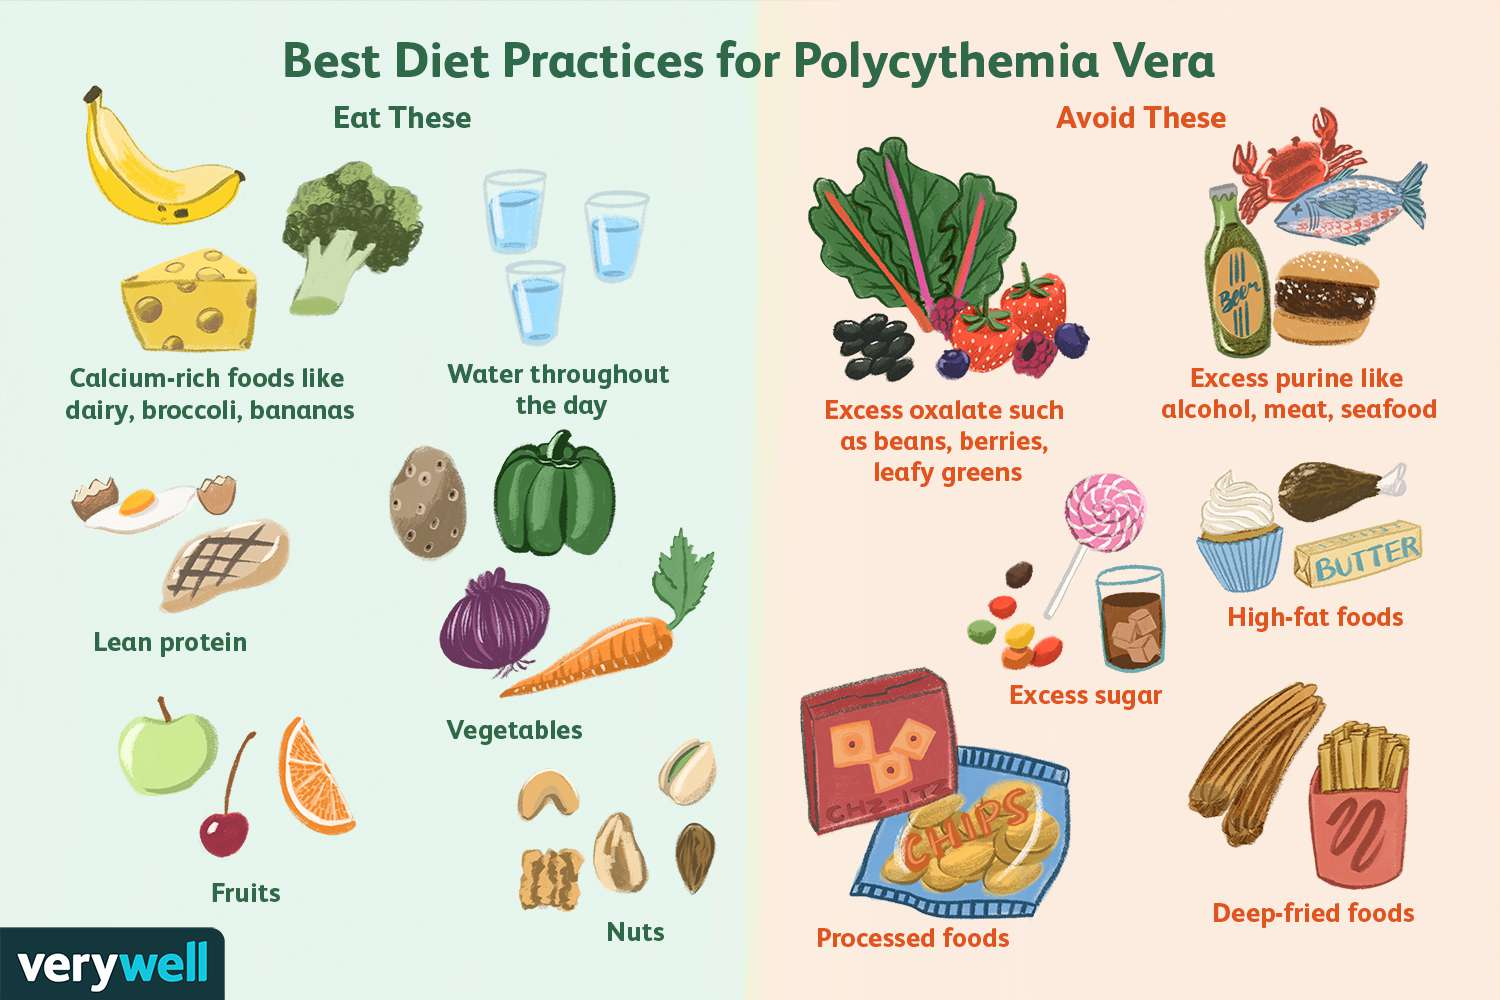 Best Diet Practices for Polycythemia Vera